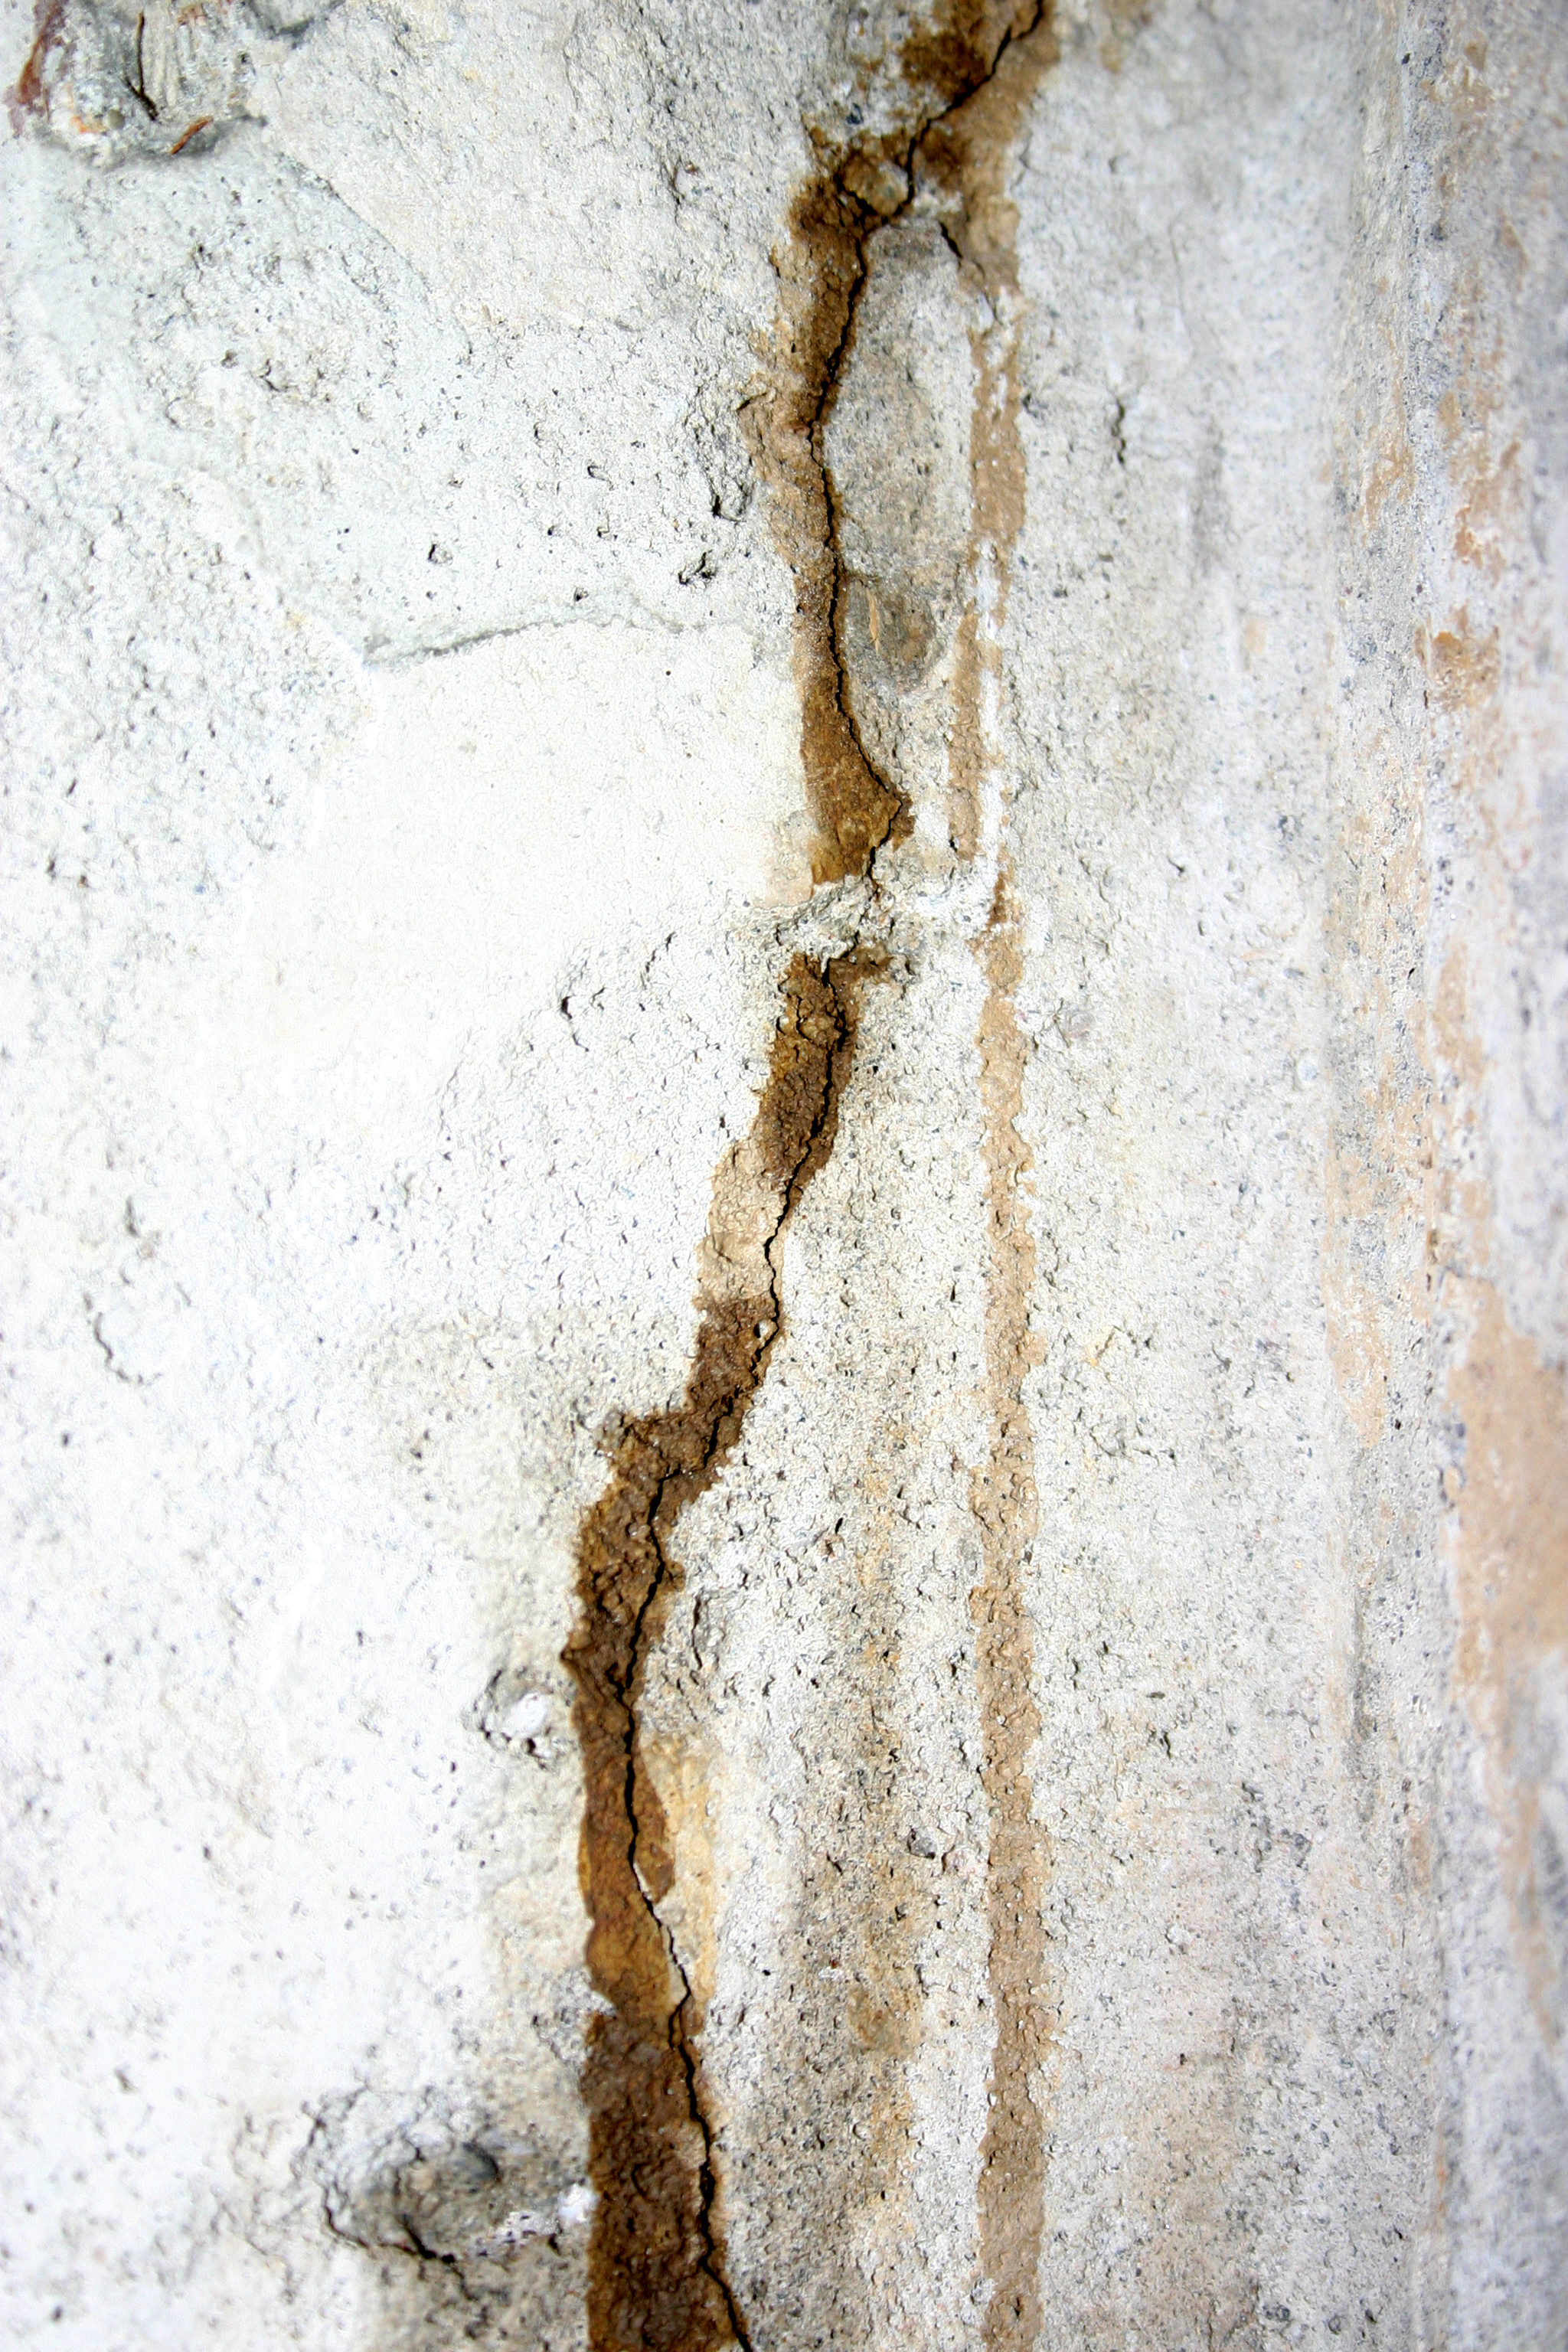 Cracked foundation crack king foundation repair for Poured concrete foundation cracks